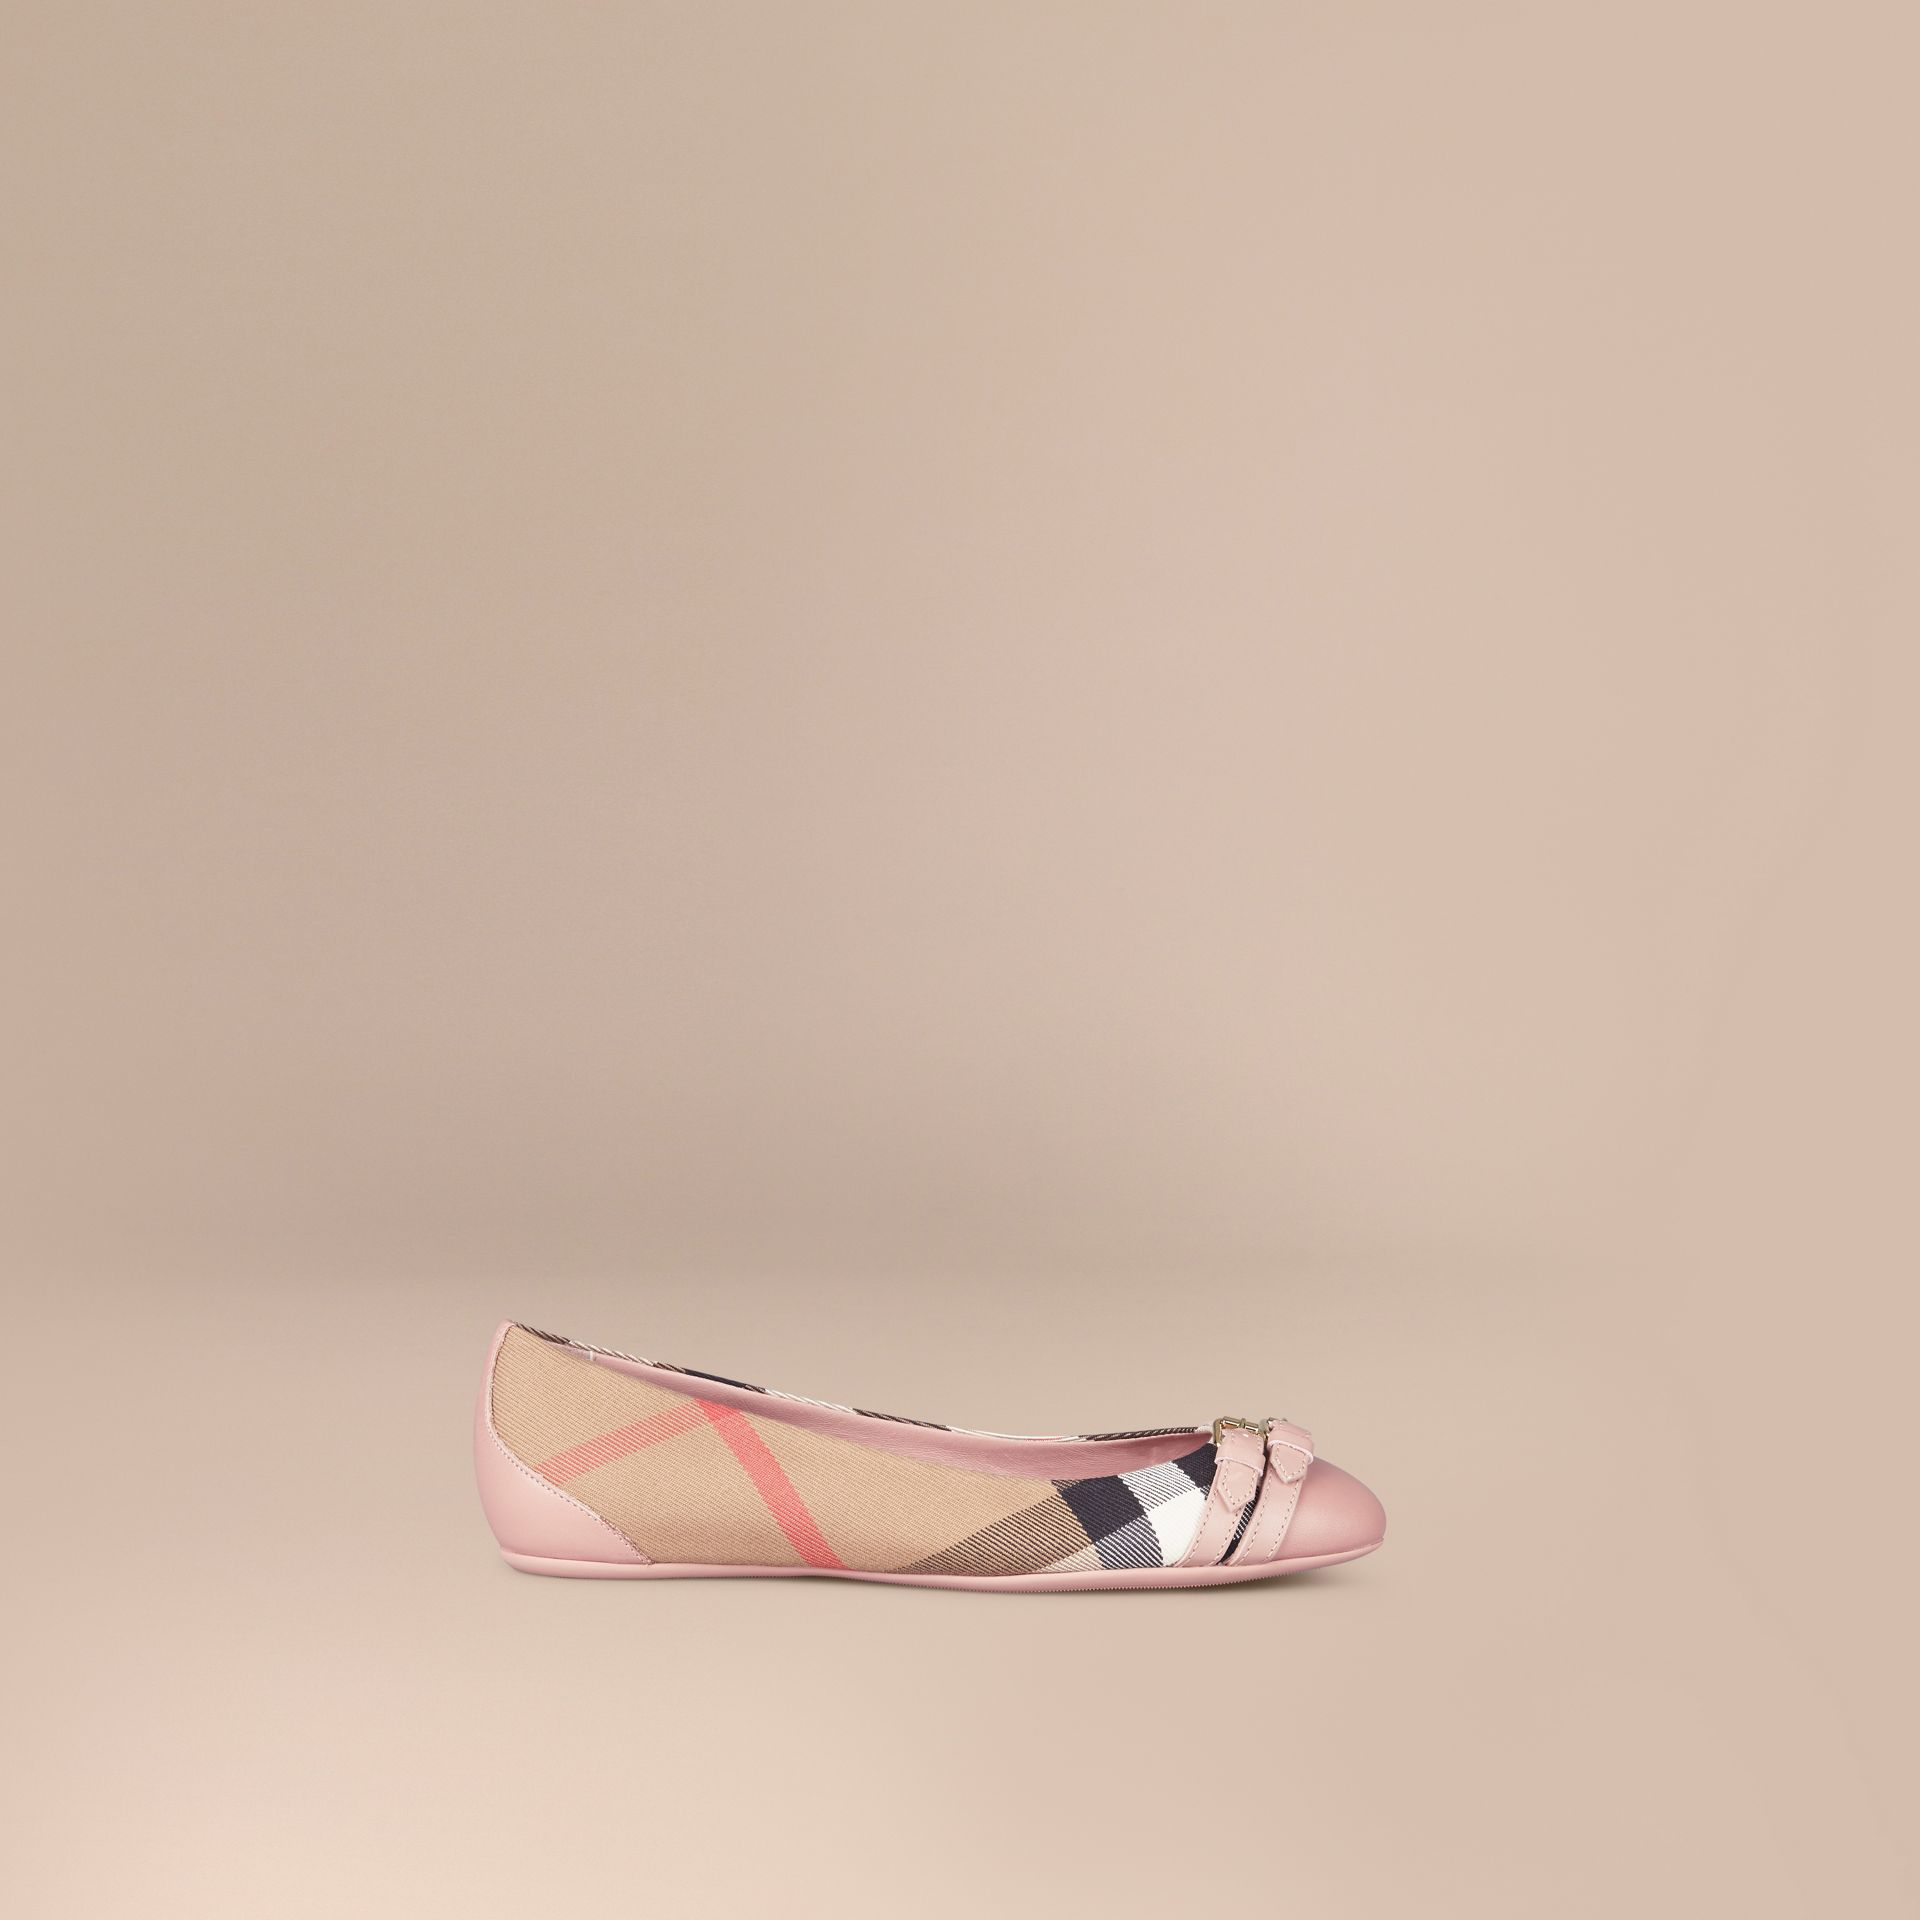 Belt Detail House Check Ballerinas in Nude Blush - Women | Burberry Australia - gallery image 1